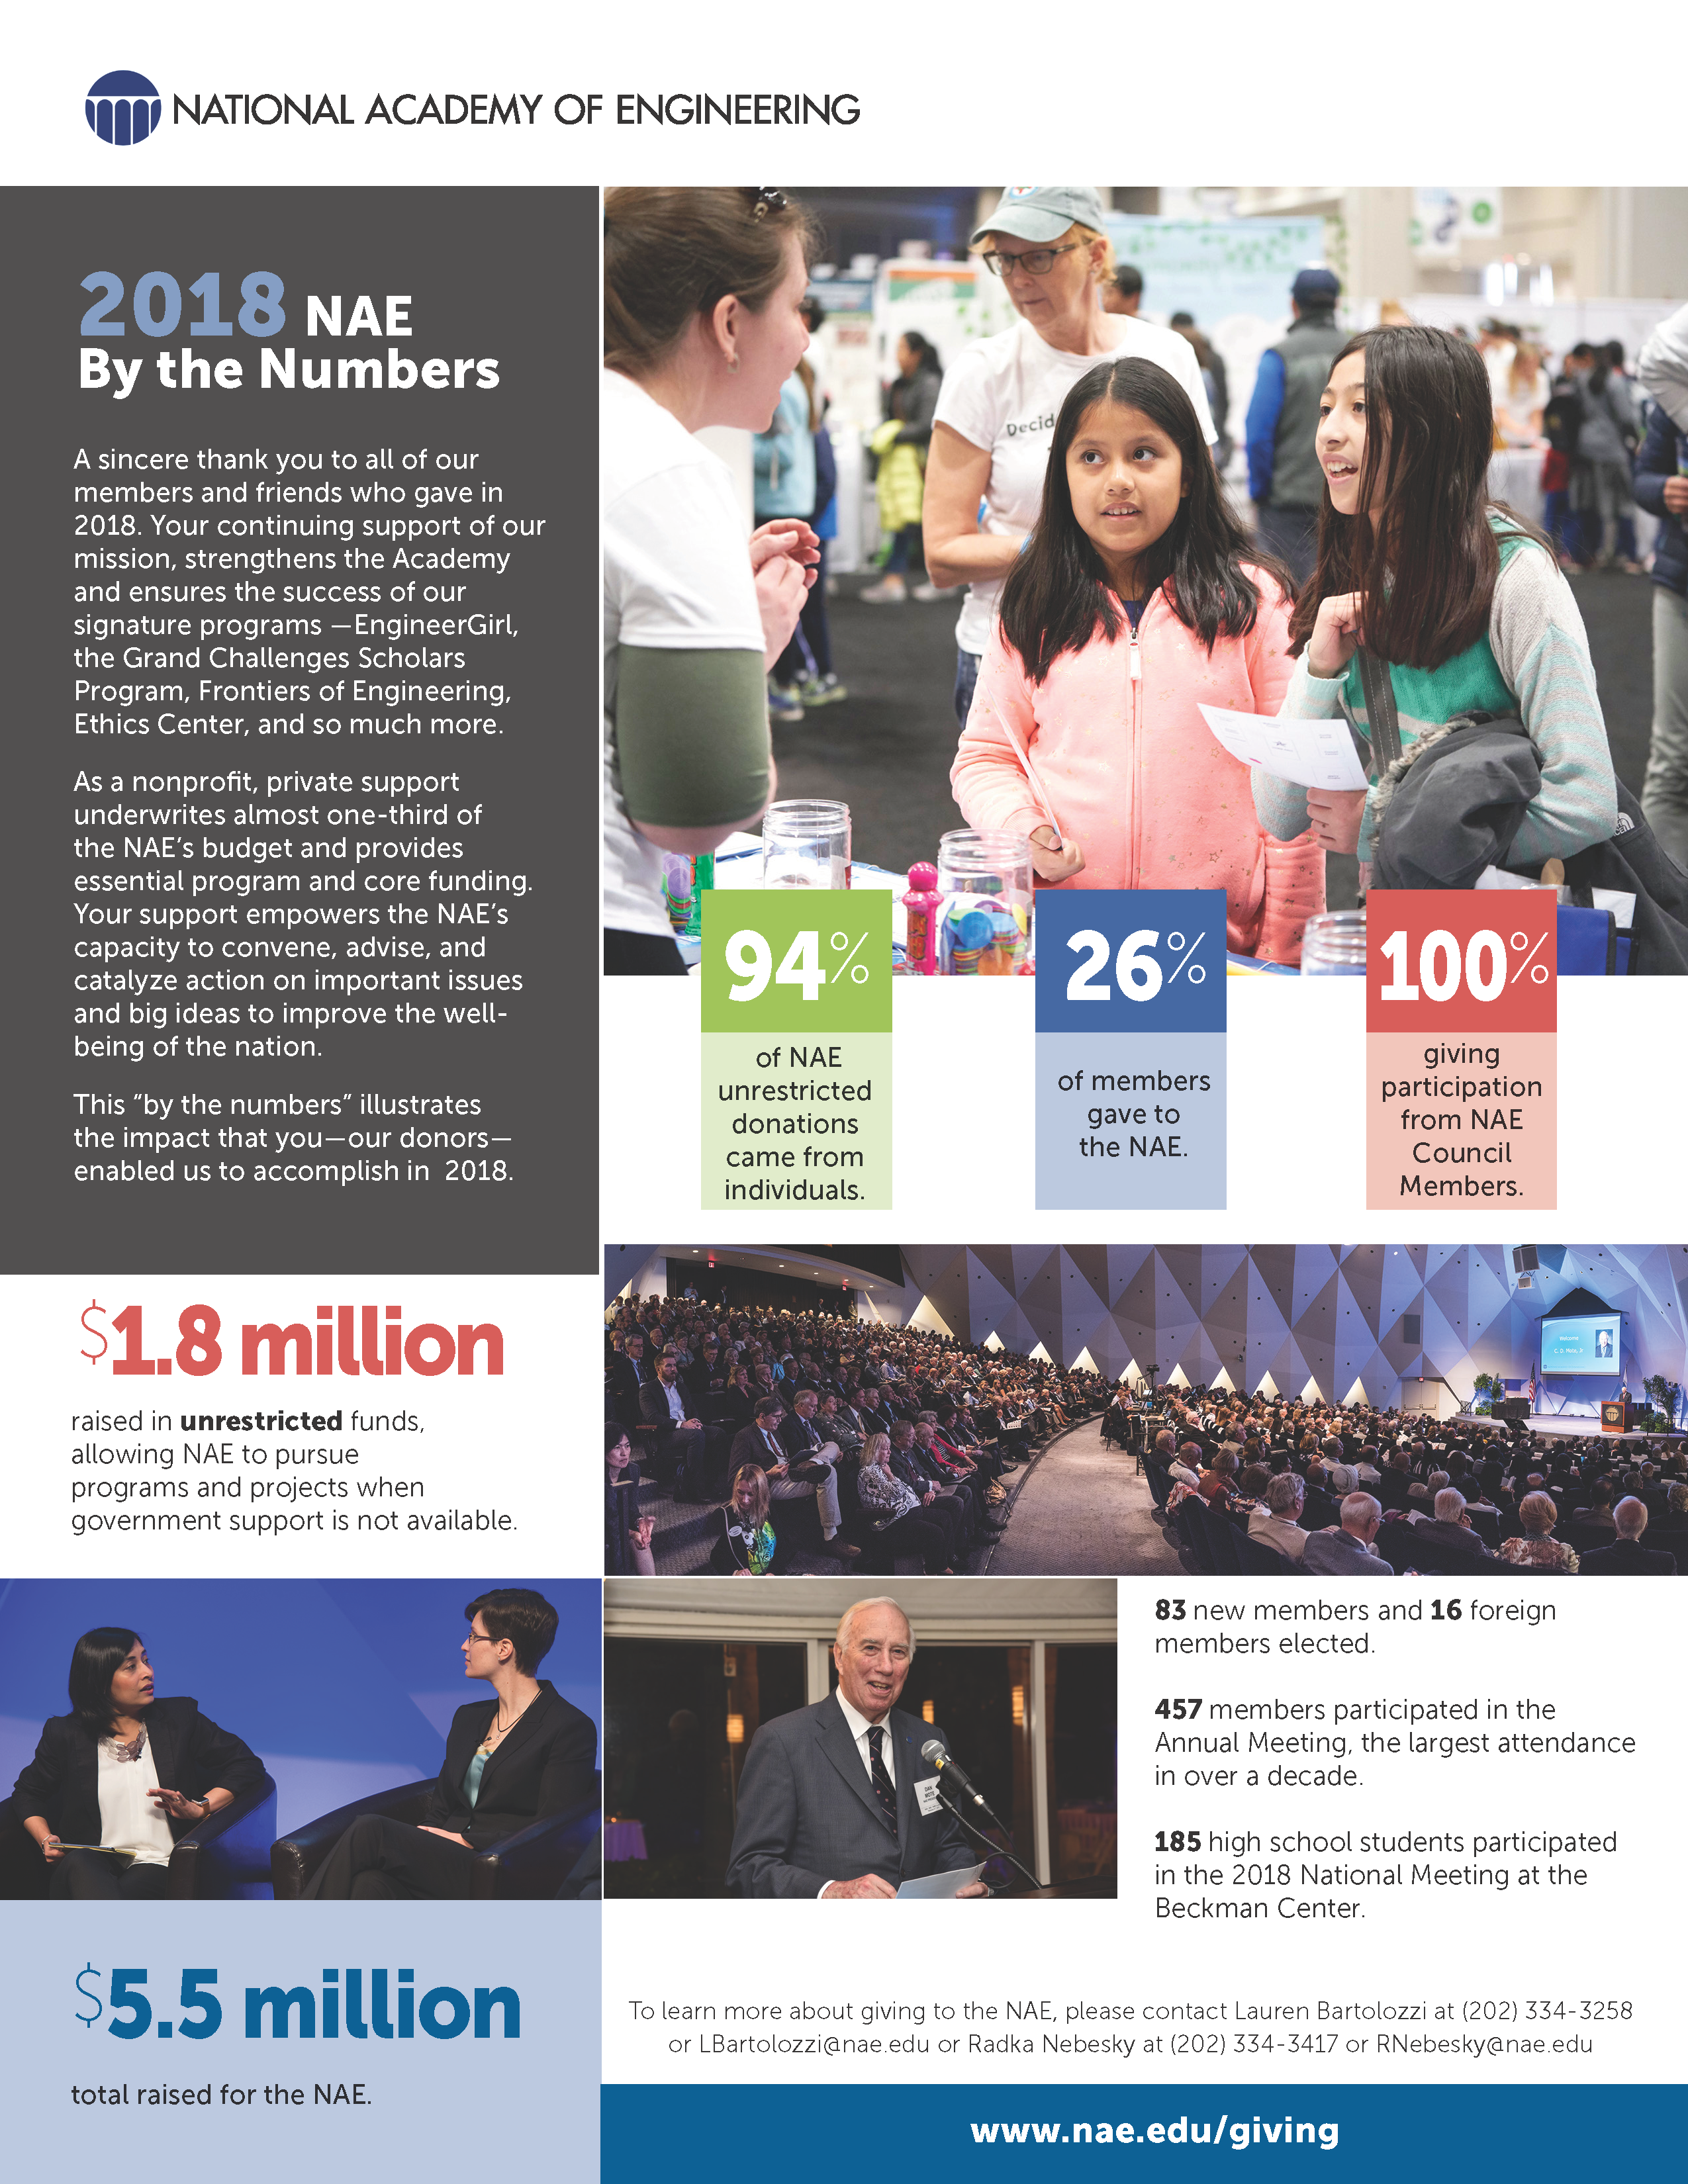 NAE 2018 Giving By the Numbers